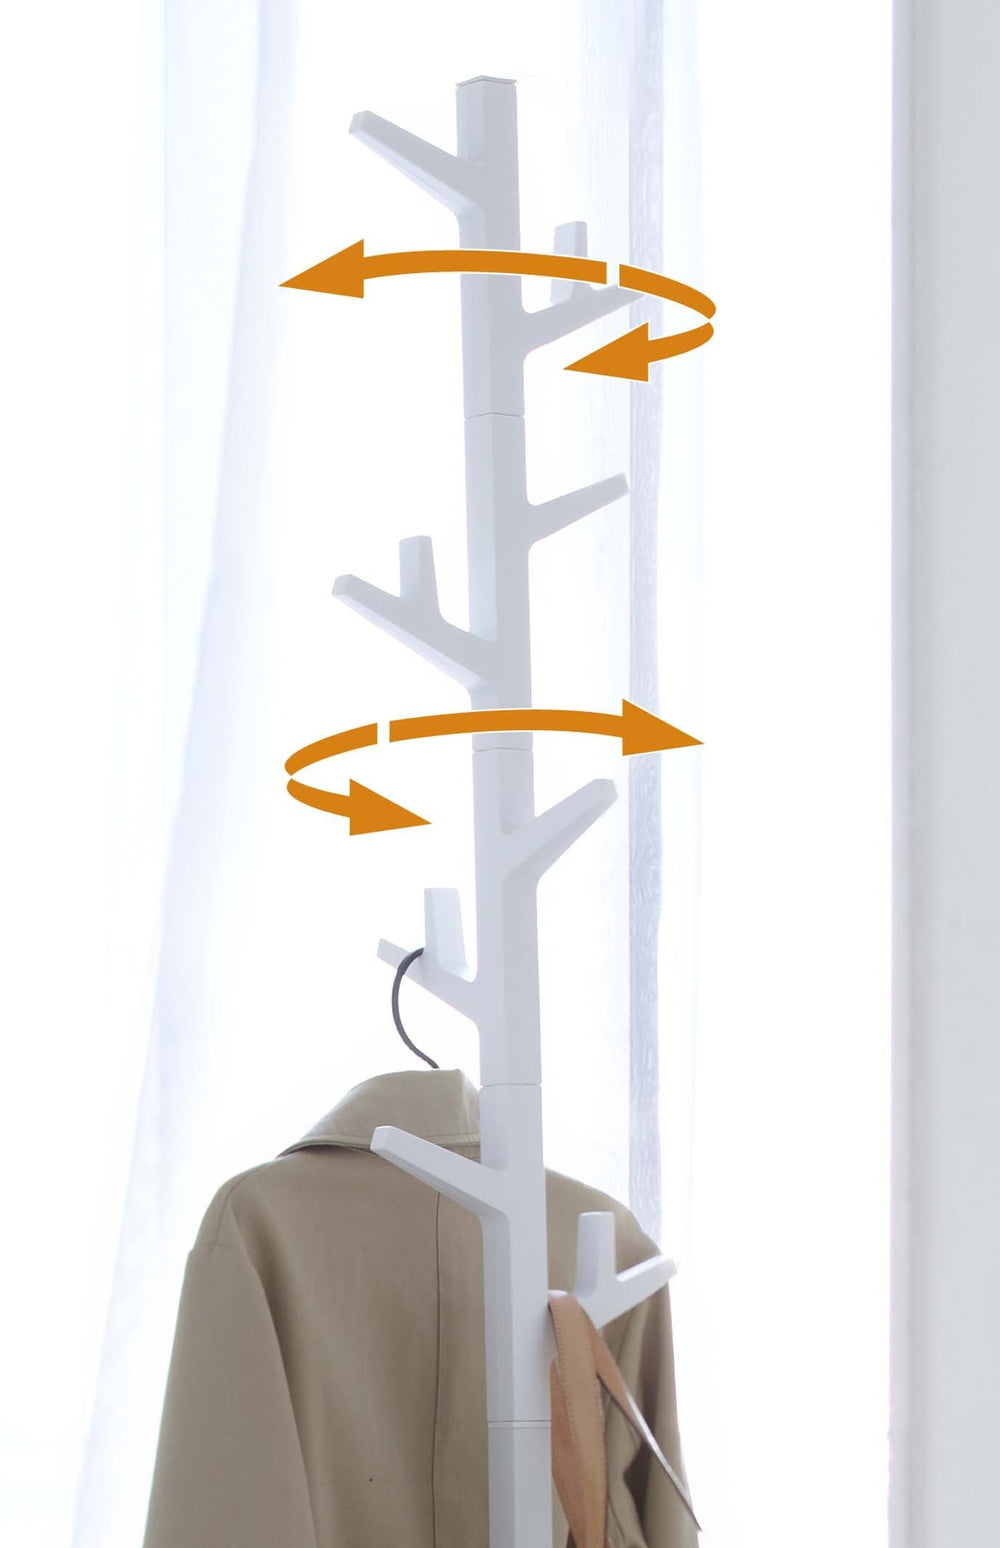 White coat rack in the shape of a tree, marked with arrows to show the movement of the rack